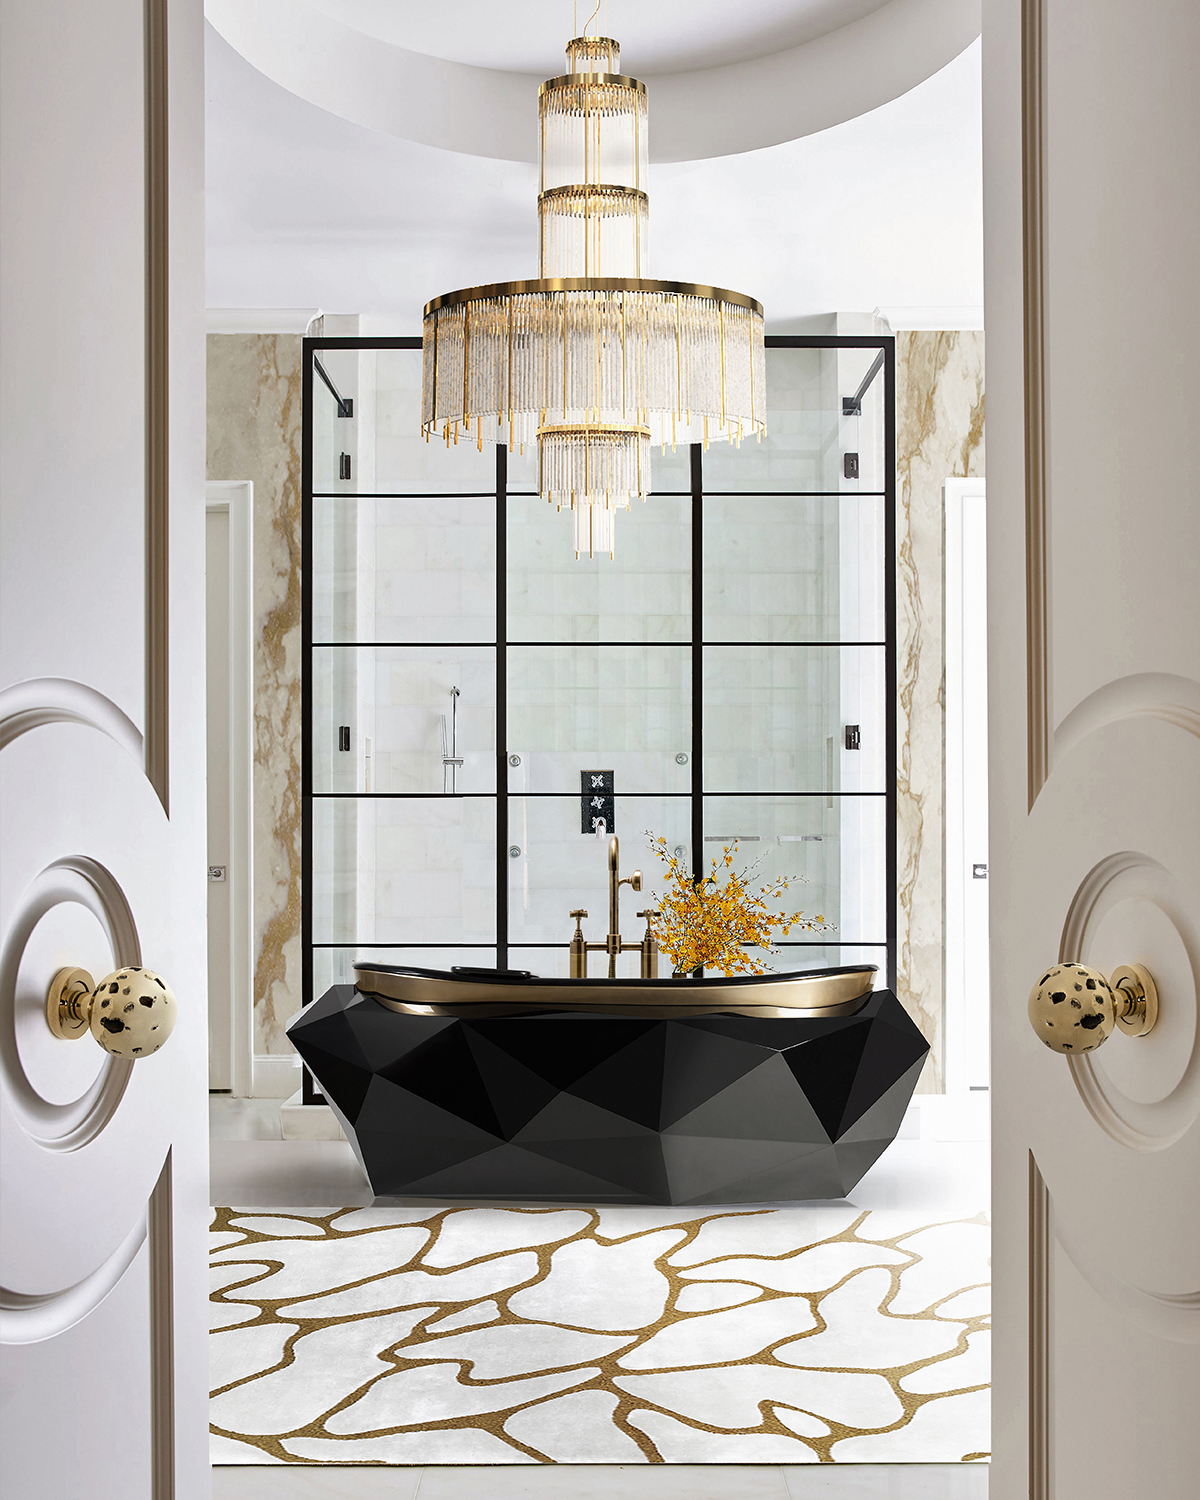 bathroom, golden bathroom, gold,maison valentina, bathub, mirror, rug, tap, bathroom decoration, bathroom decor bathroom design Add a Touch of Gold to Your Bathroom – 5 Ideas to Make it Shine 5 ideas to add a touch of gold to your bathroom 5